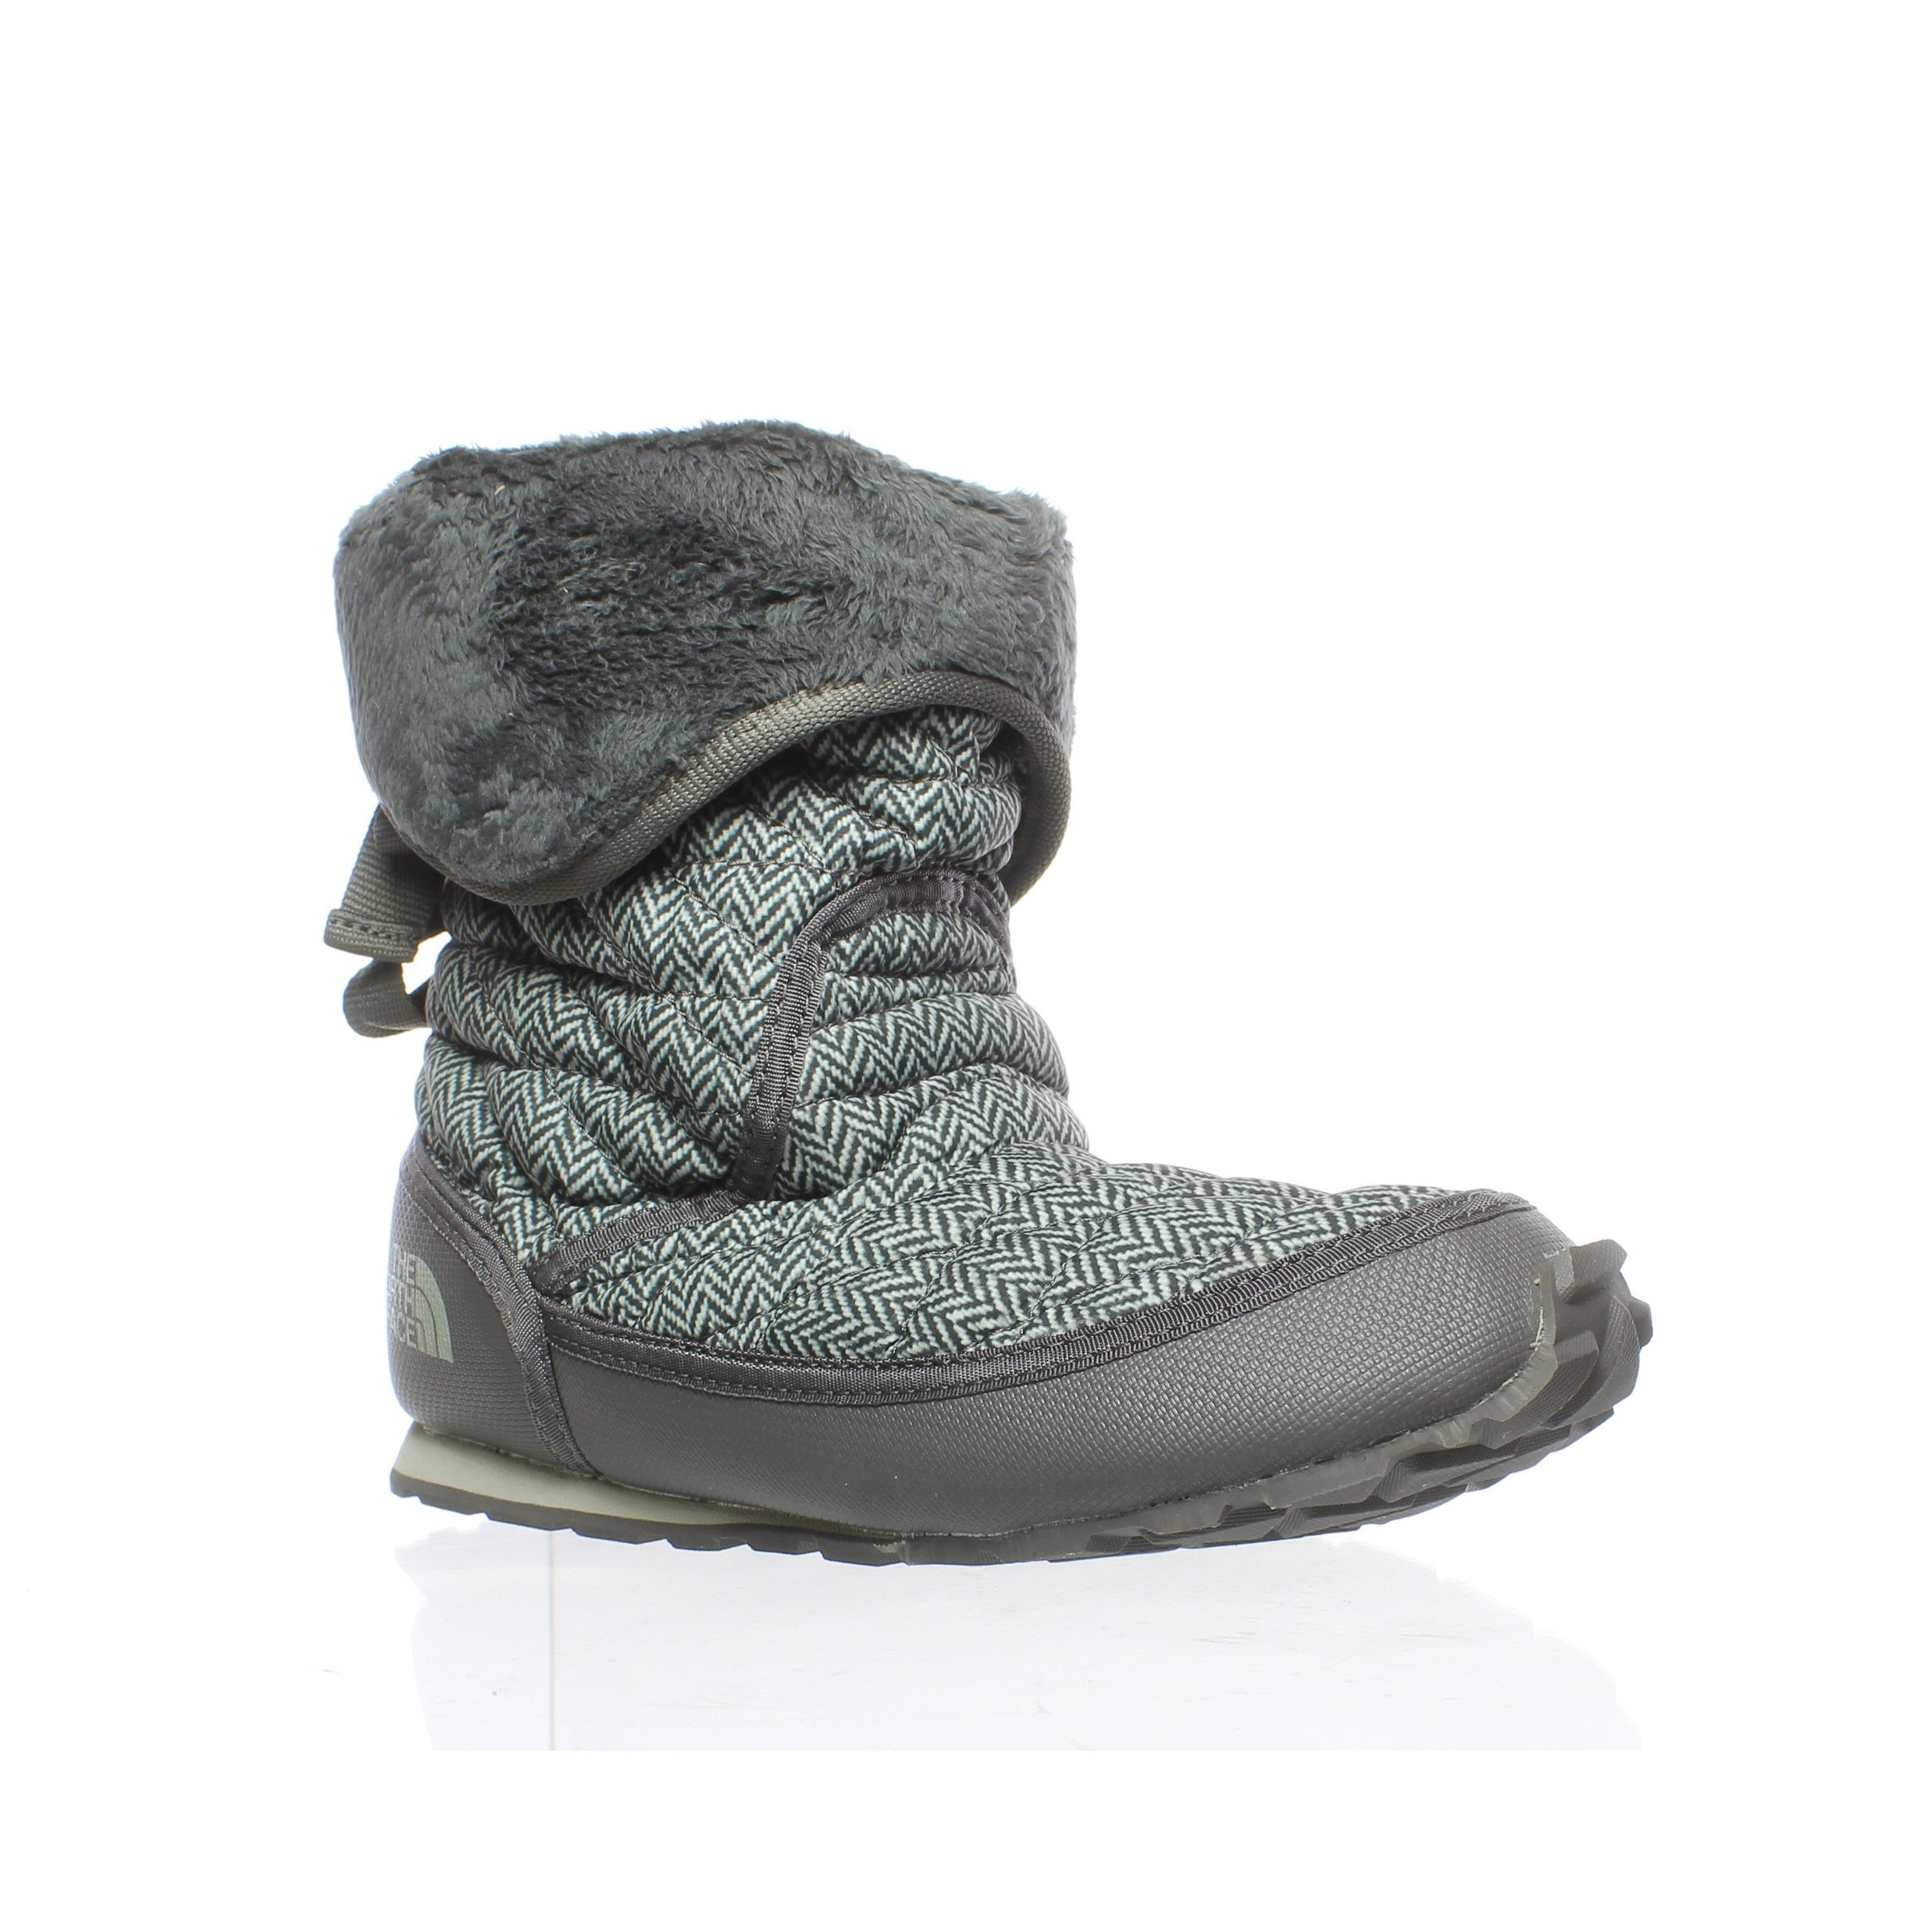 18f260634 Buy The North Face Women's Boots Online at Overstock | Our Best ...